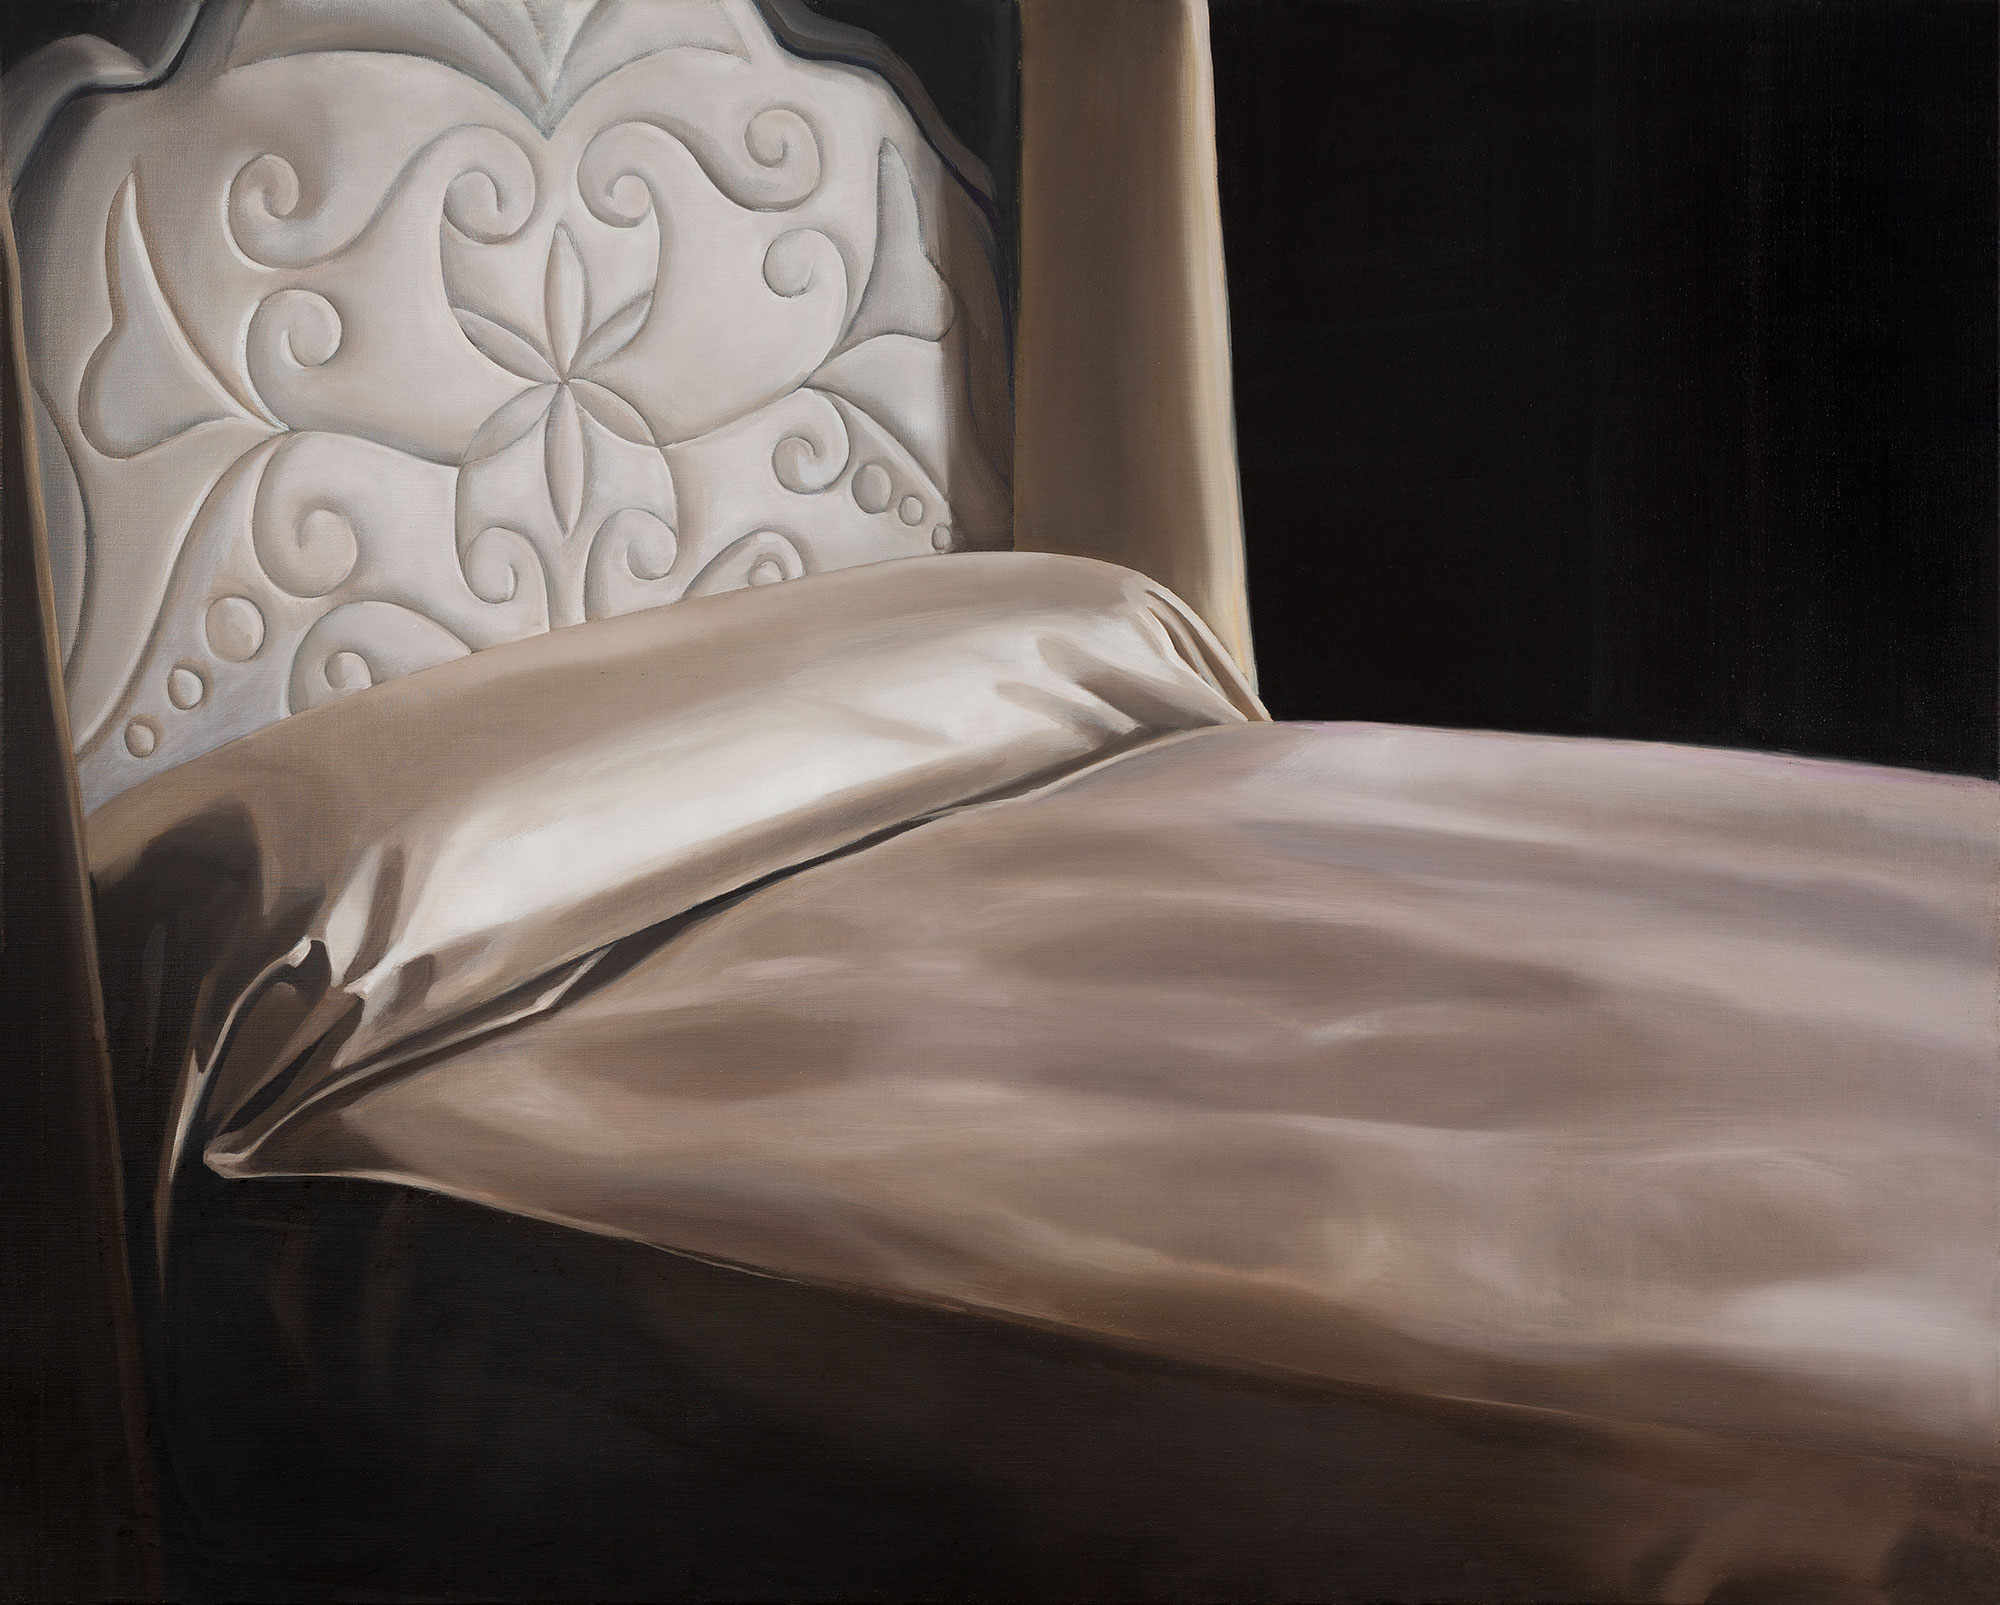 Anne WALLACE 'Boudoir' 1997 | oil on canvas | Collection of James and Jacqui Erskine, Sydney